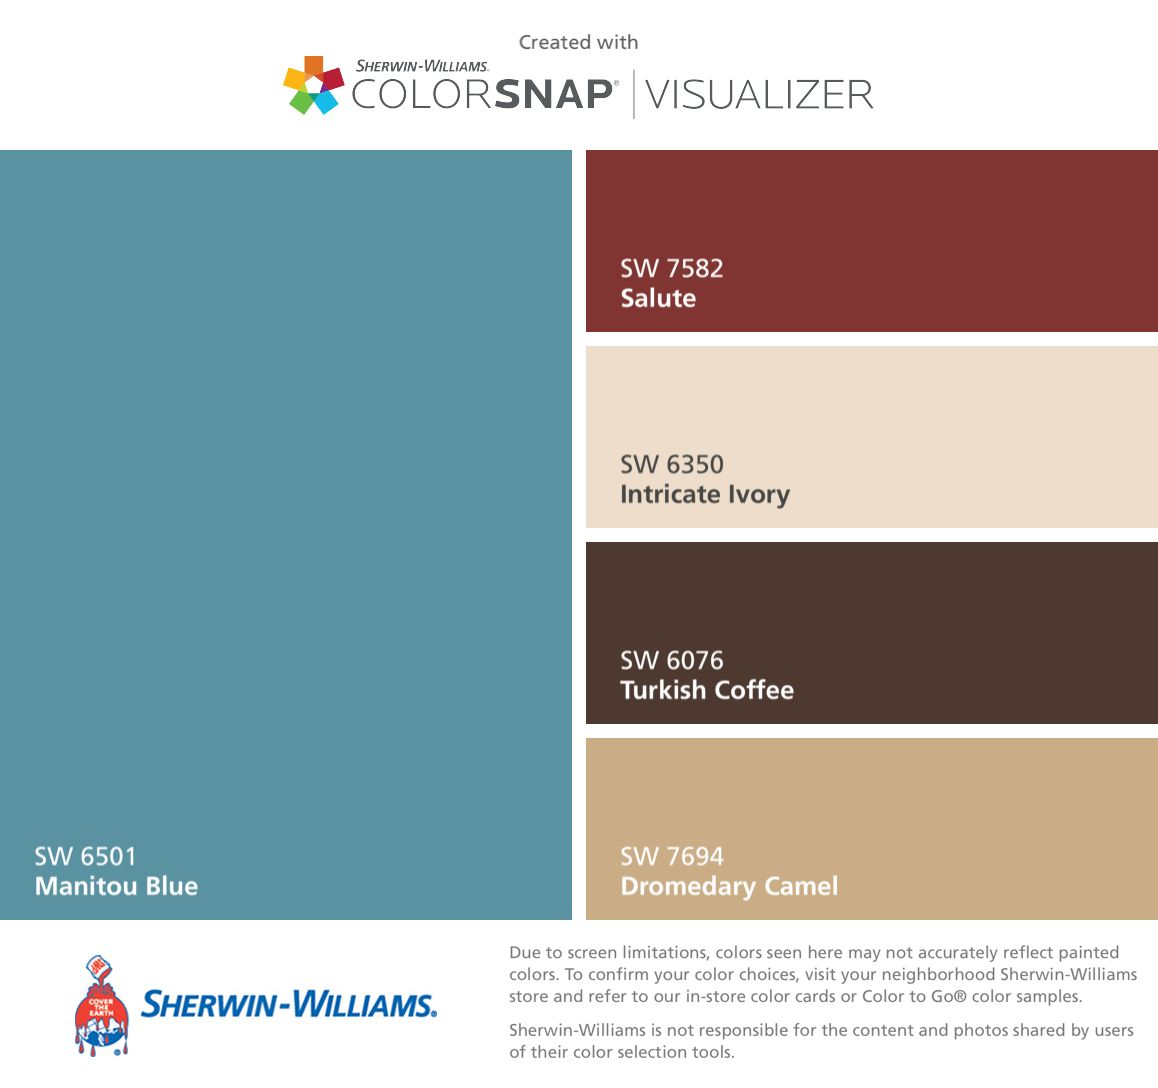 Teal Paint Colors I Found These Colors With Colorsnapr Visualizer For Iphone By